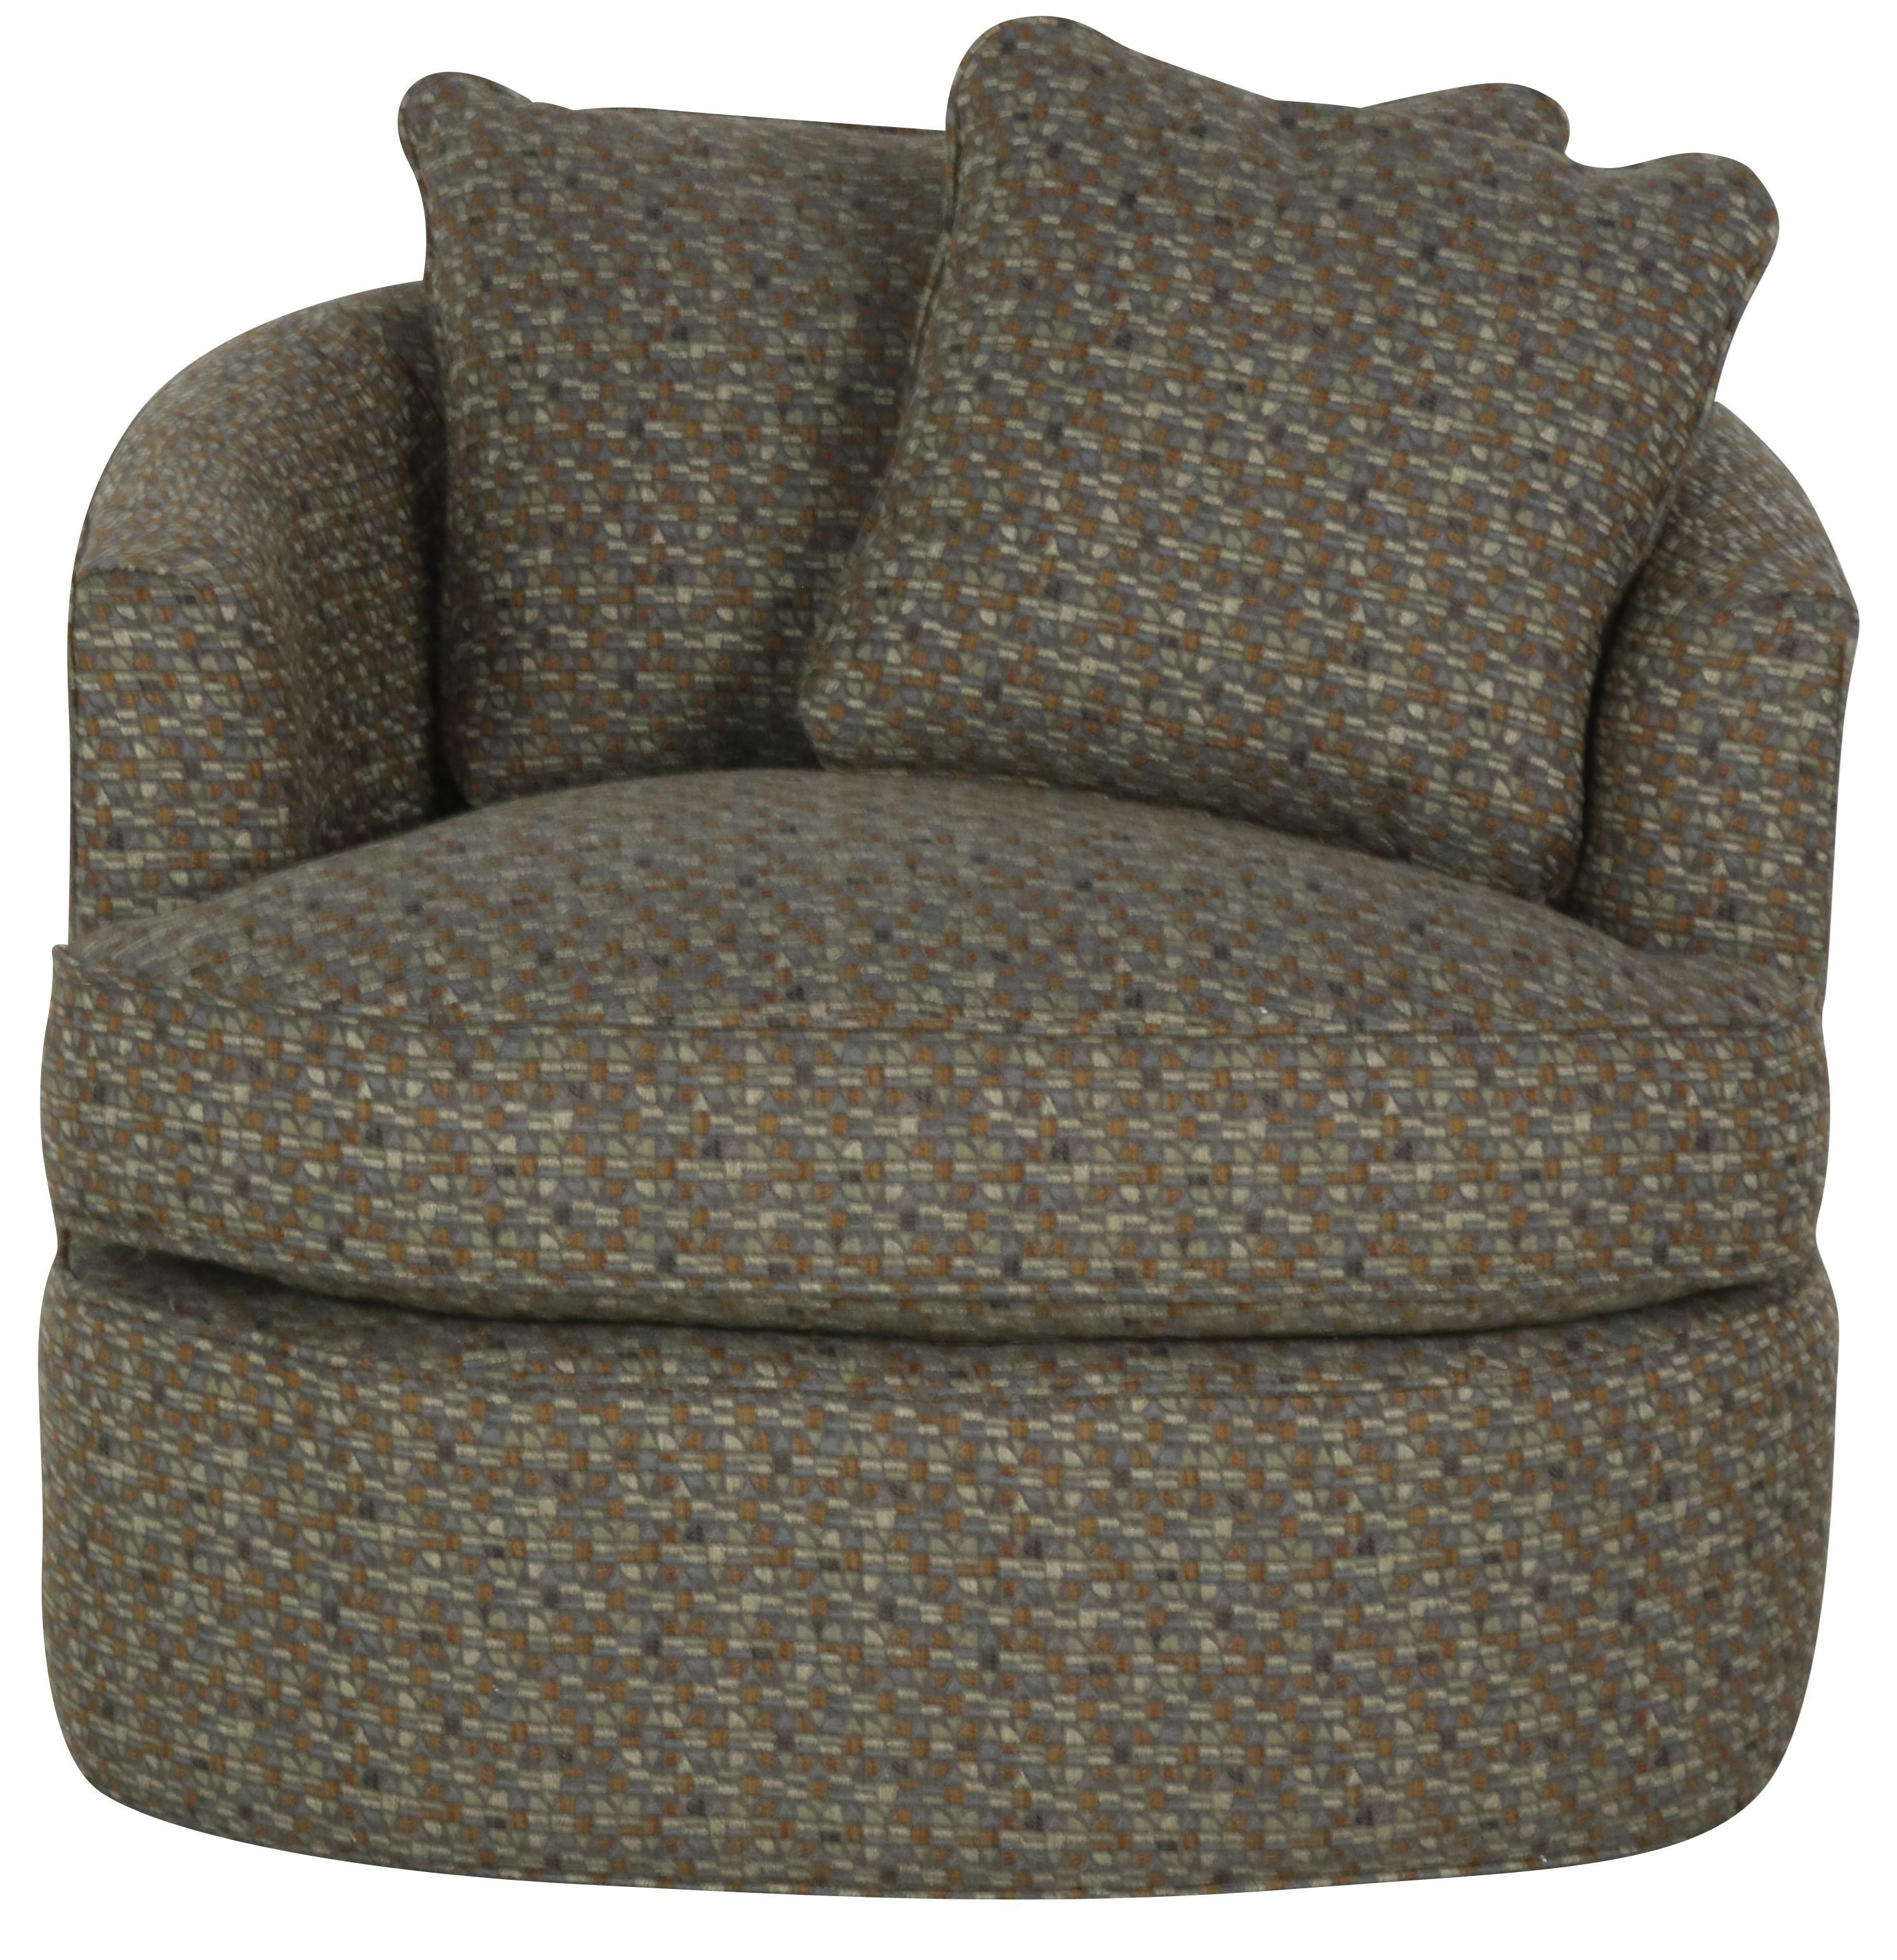 085710 Swivel Chair by Cozi Life Upholstery at Sprintz Furniture